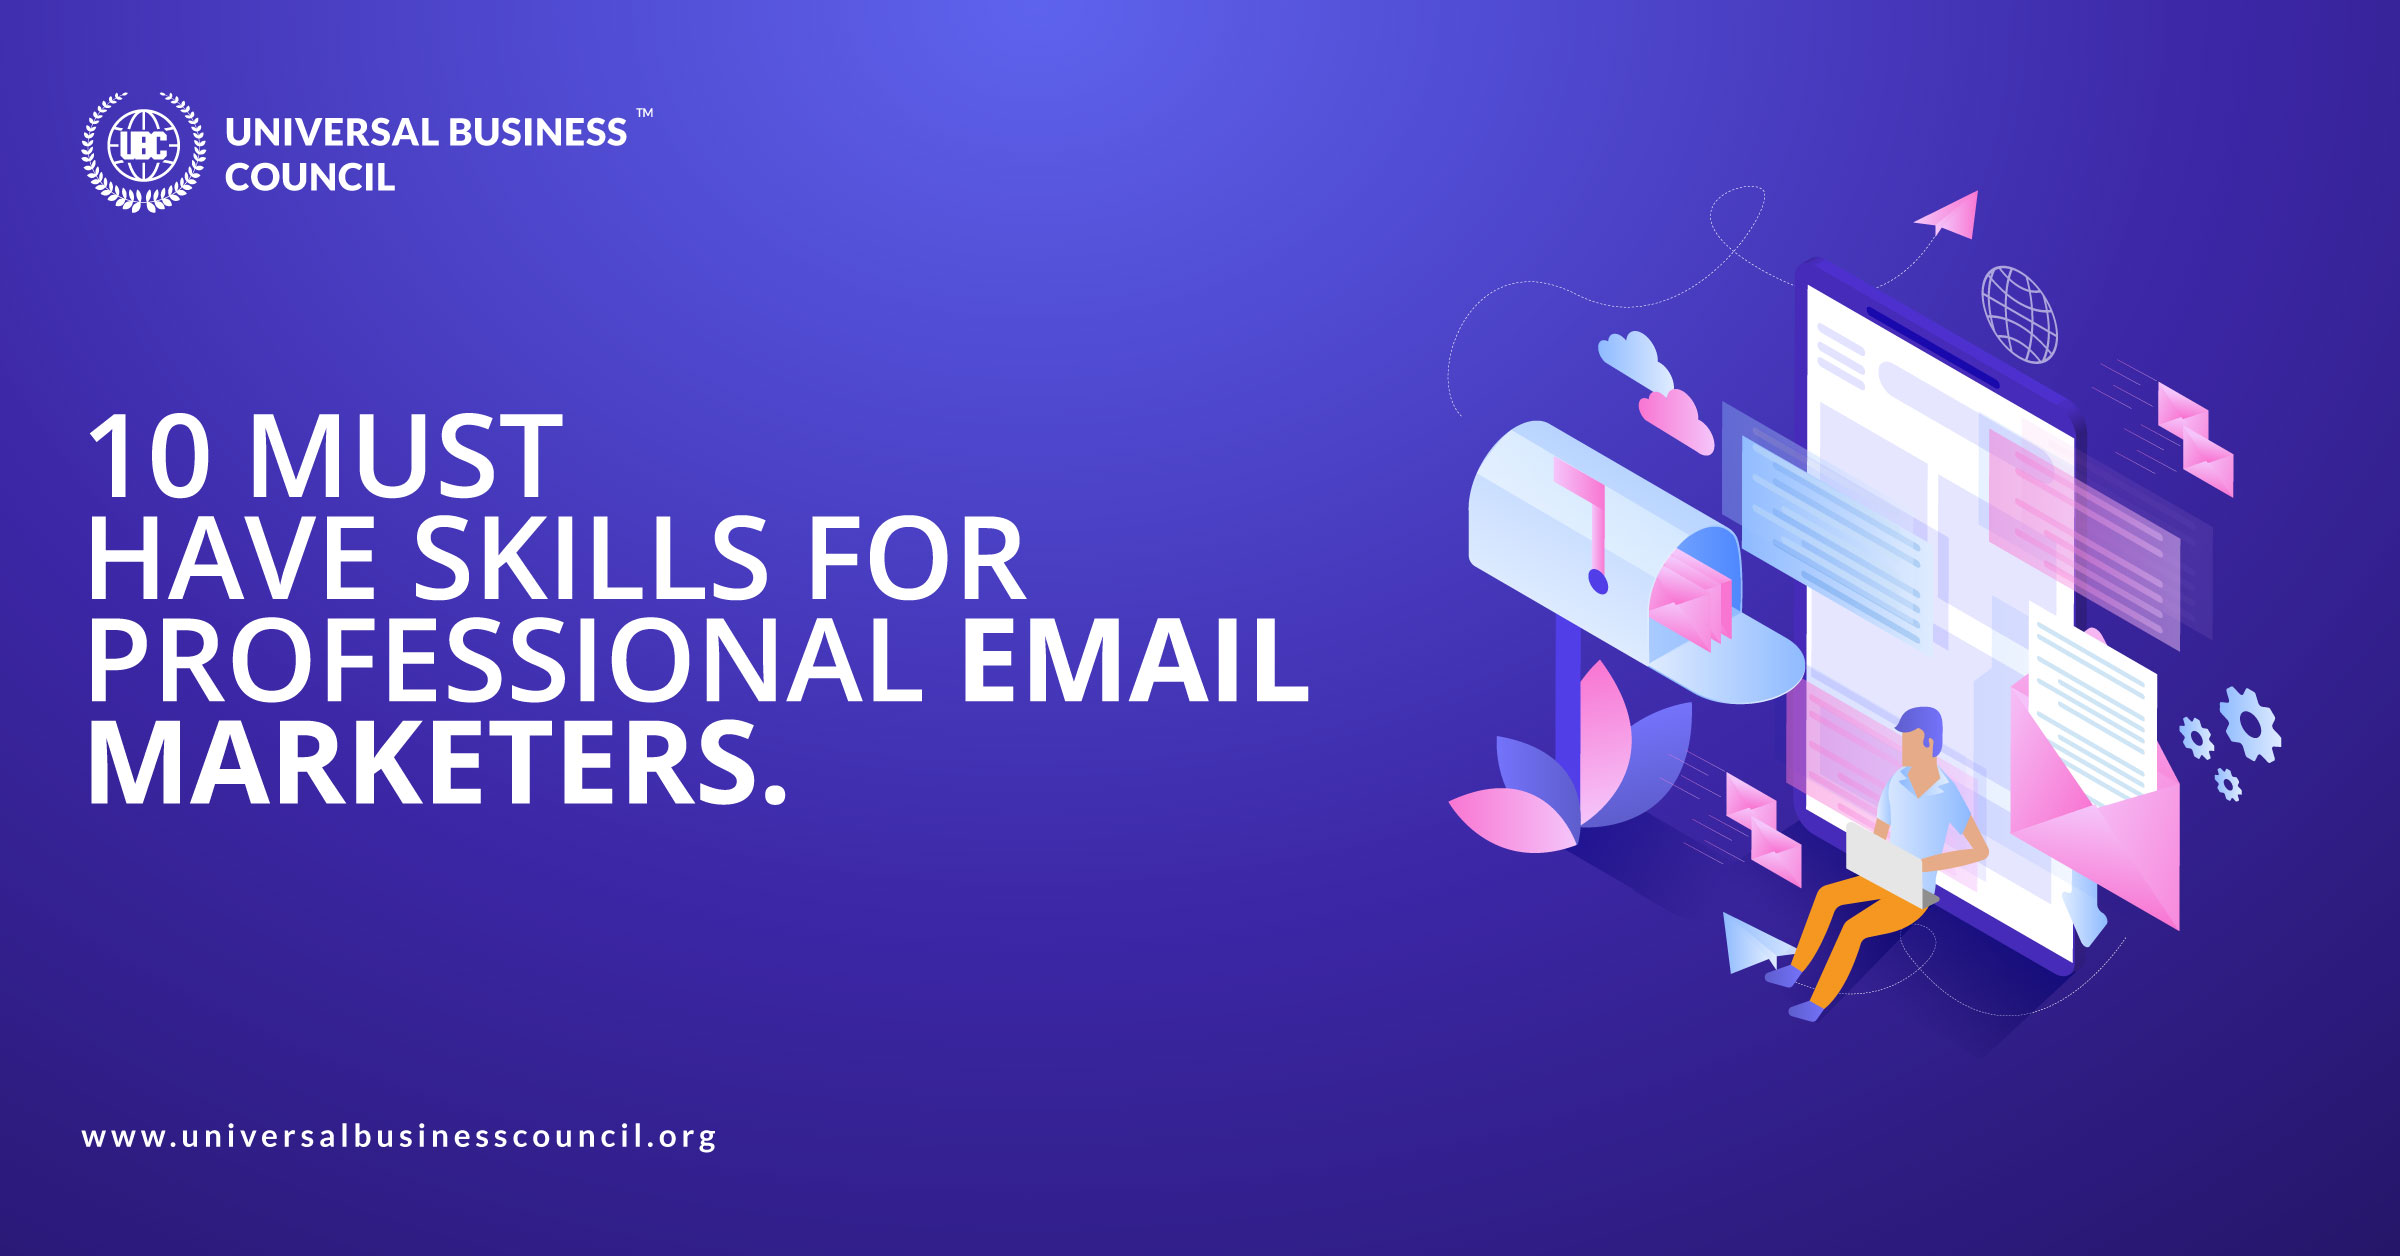 10-Must-Have-Skills-for-Professional-Email-Marketers